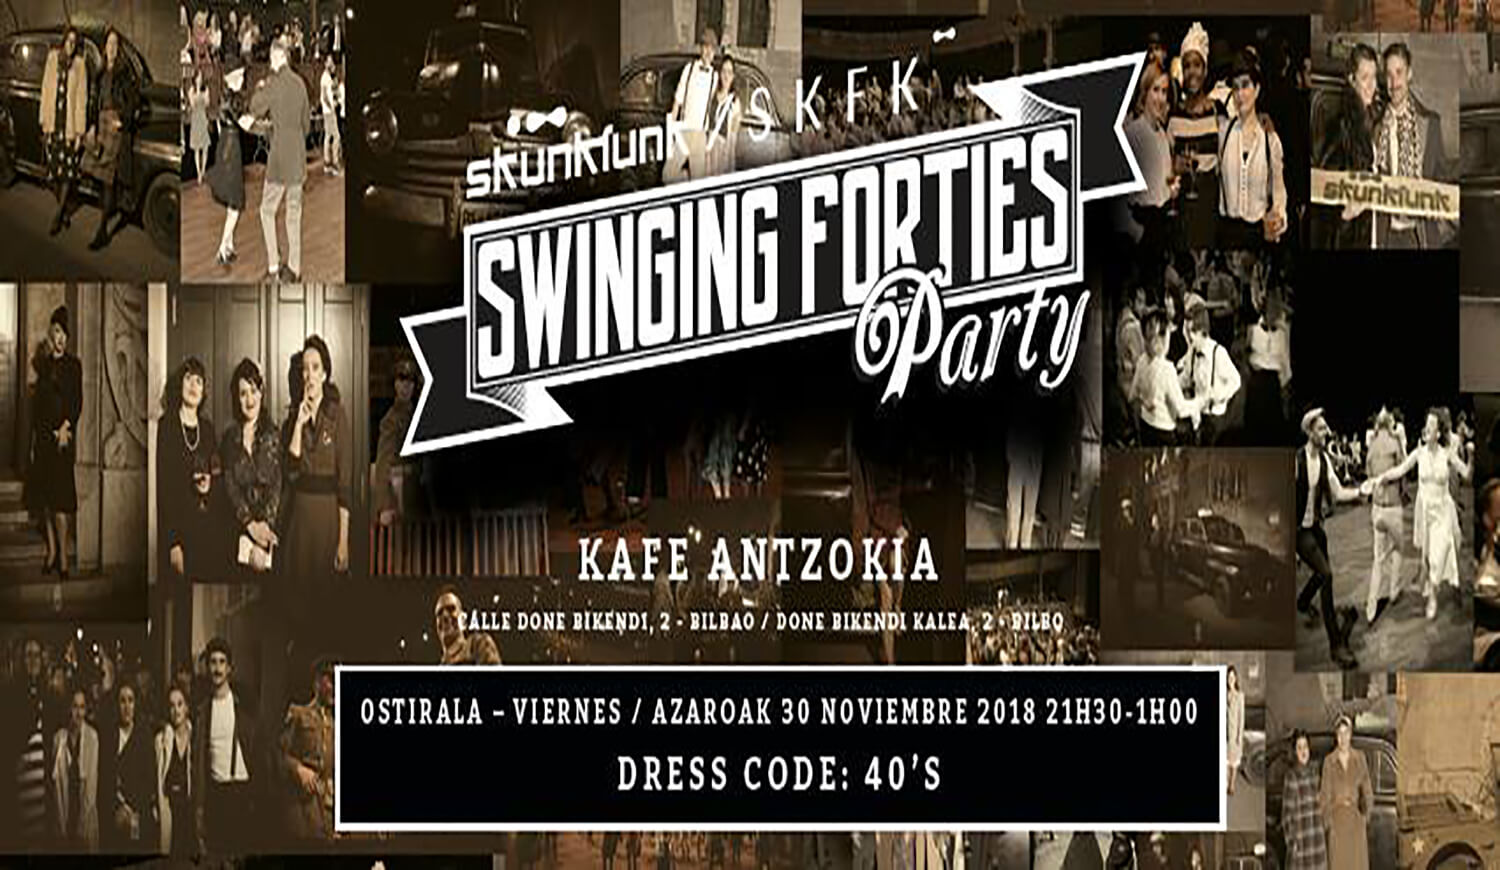 Swinging Forties Party Skunkfunk